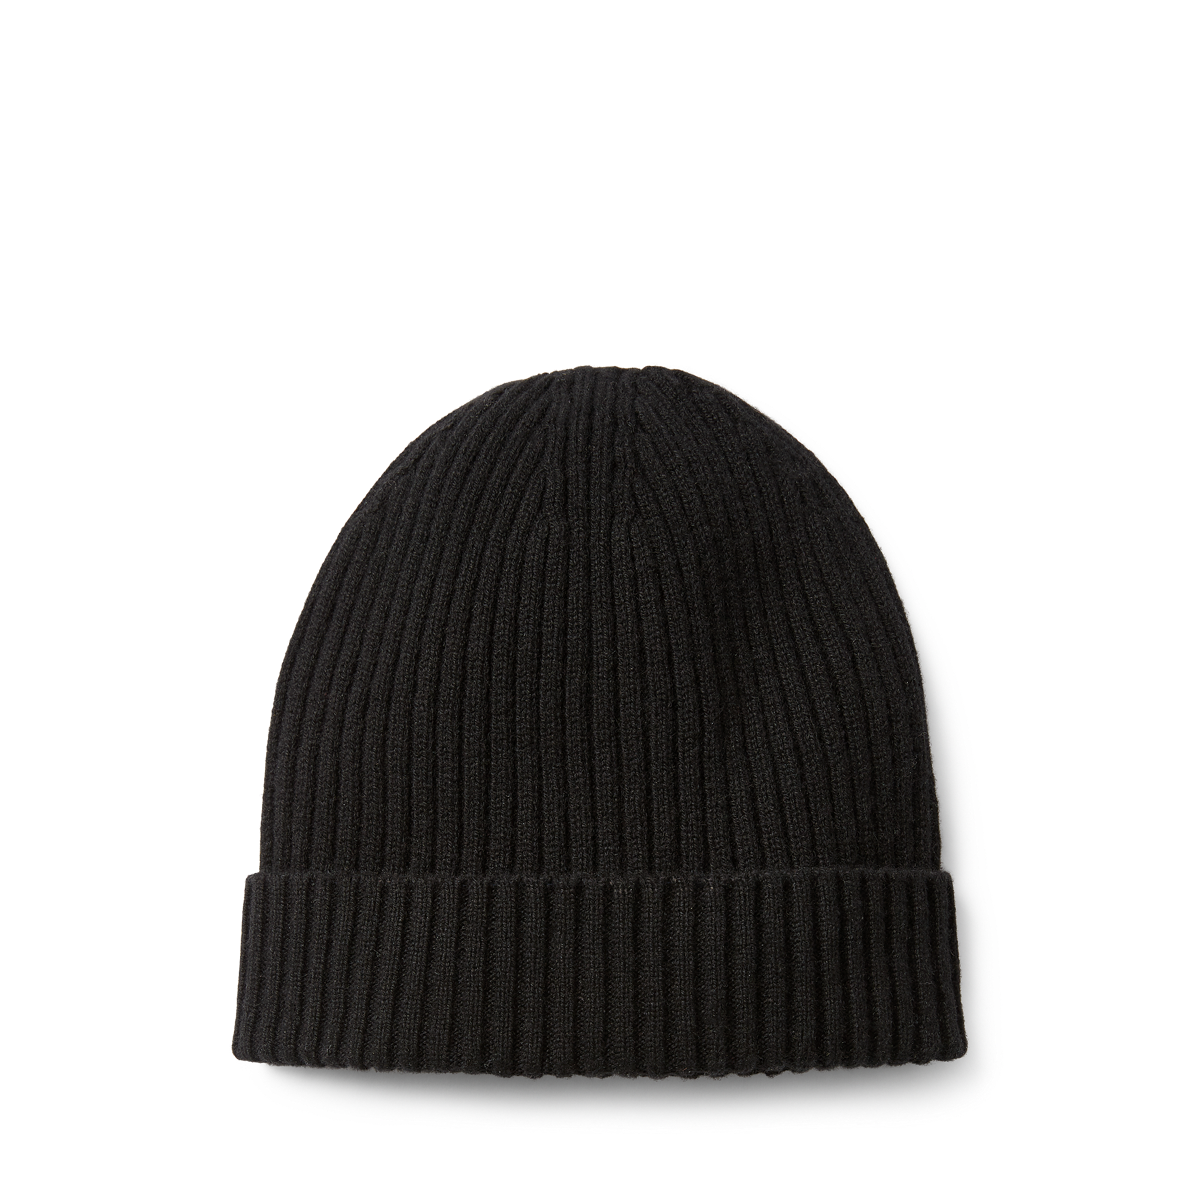 5d9f5f7a612 Watchman Cashmere Hat